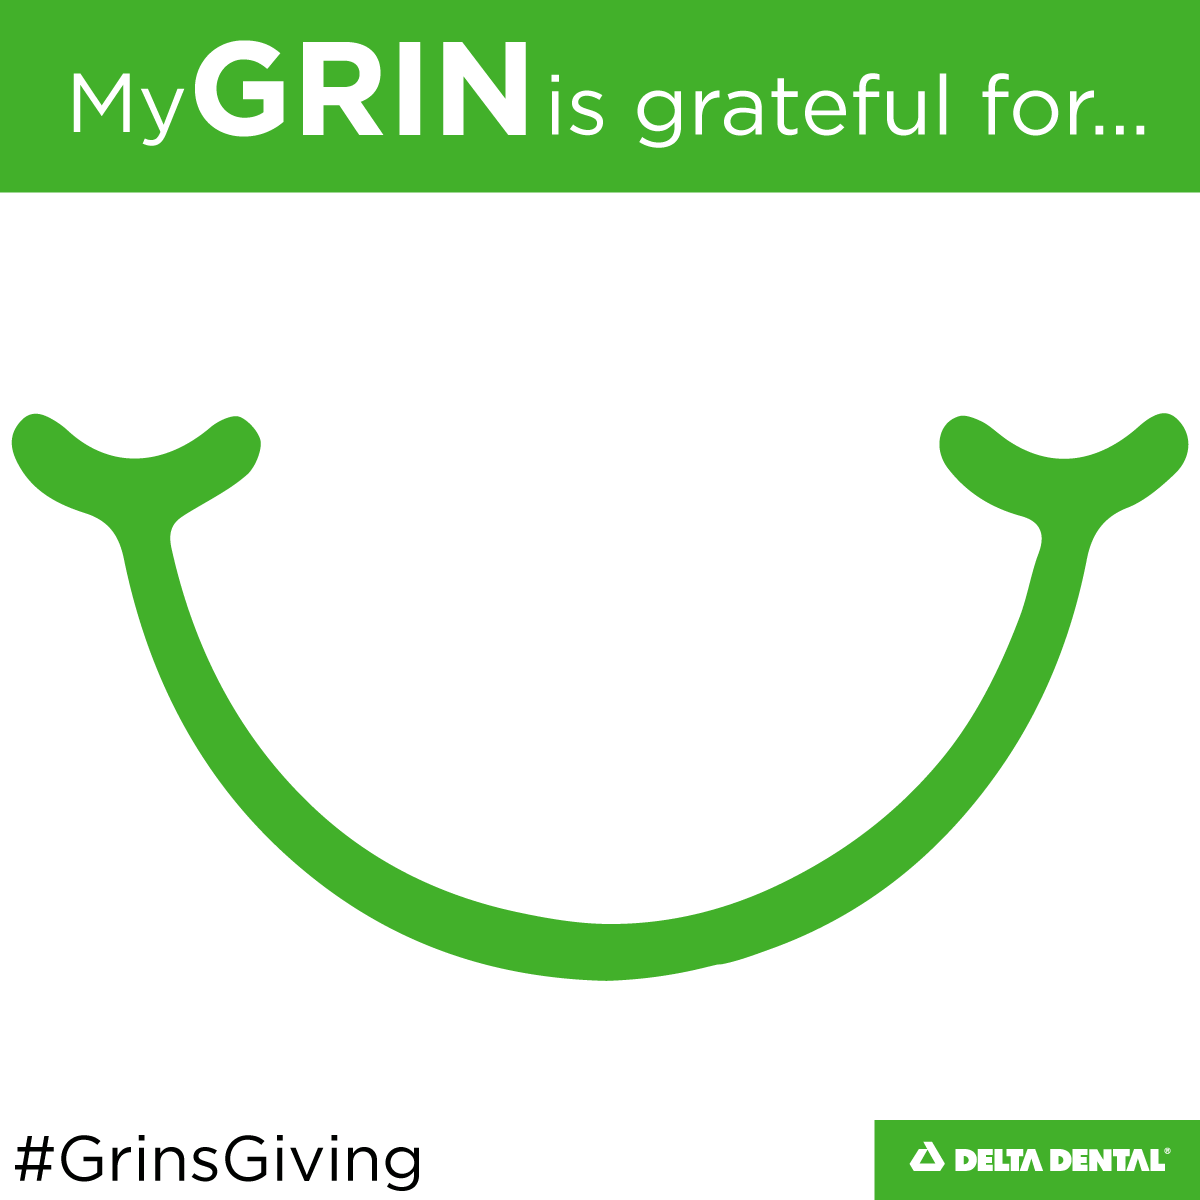 GrinsGiving GRINspirations: Learn what we're grateful for!